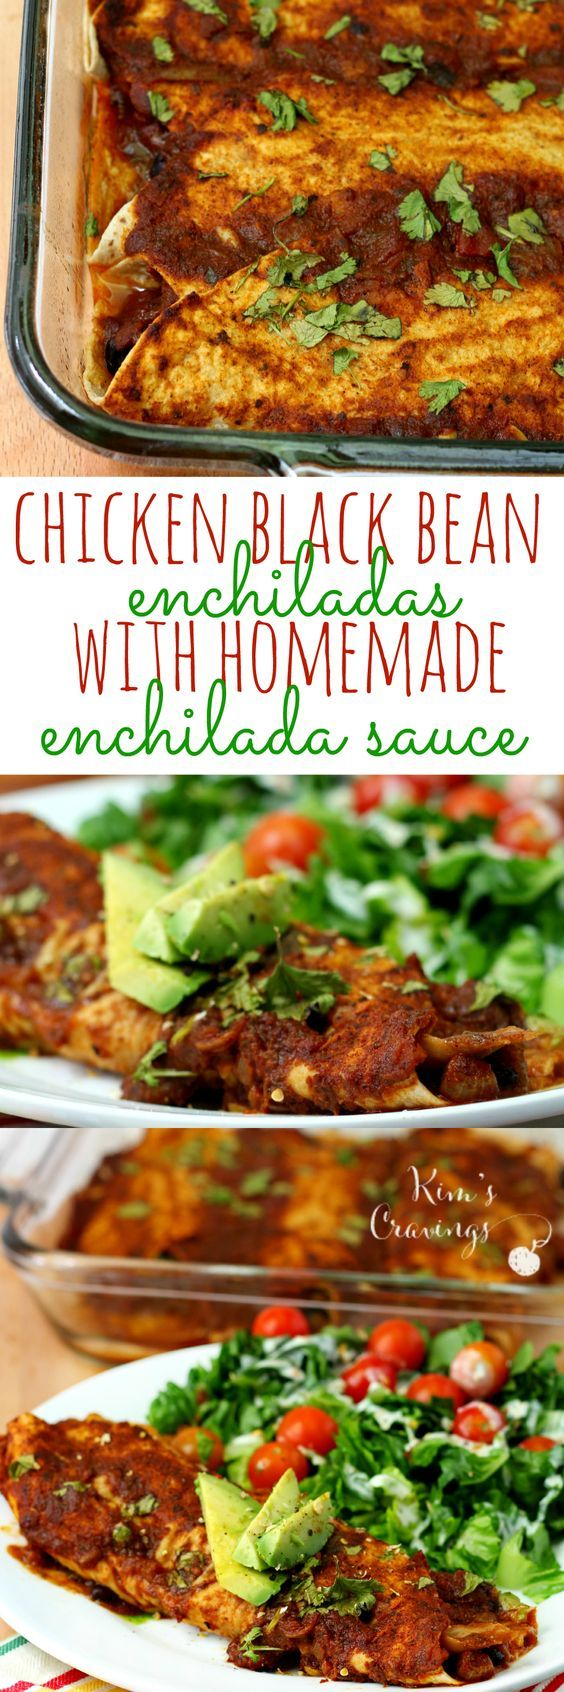 Gluten-free, dairy-free chicken black bean enchiladas are super simple to throw together and cook up quickly. Add the homemade enchilada sauce for even more delicious flavor. #KingOfFlavor Ad